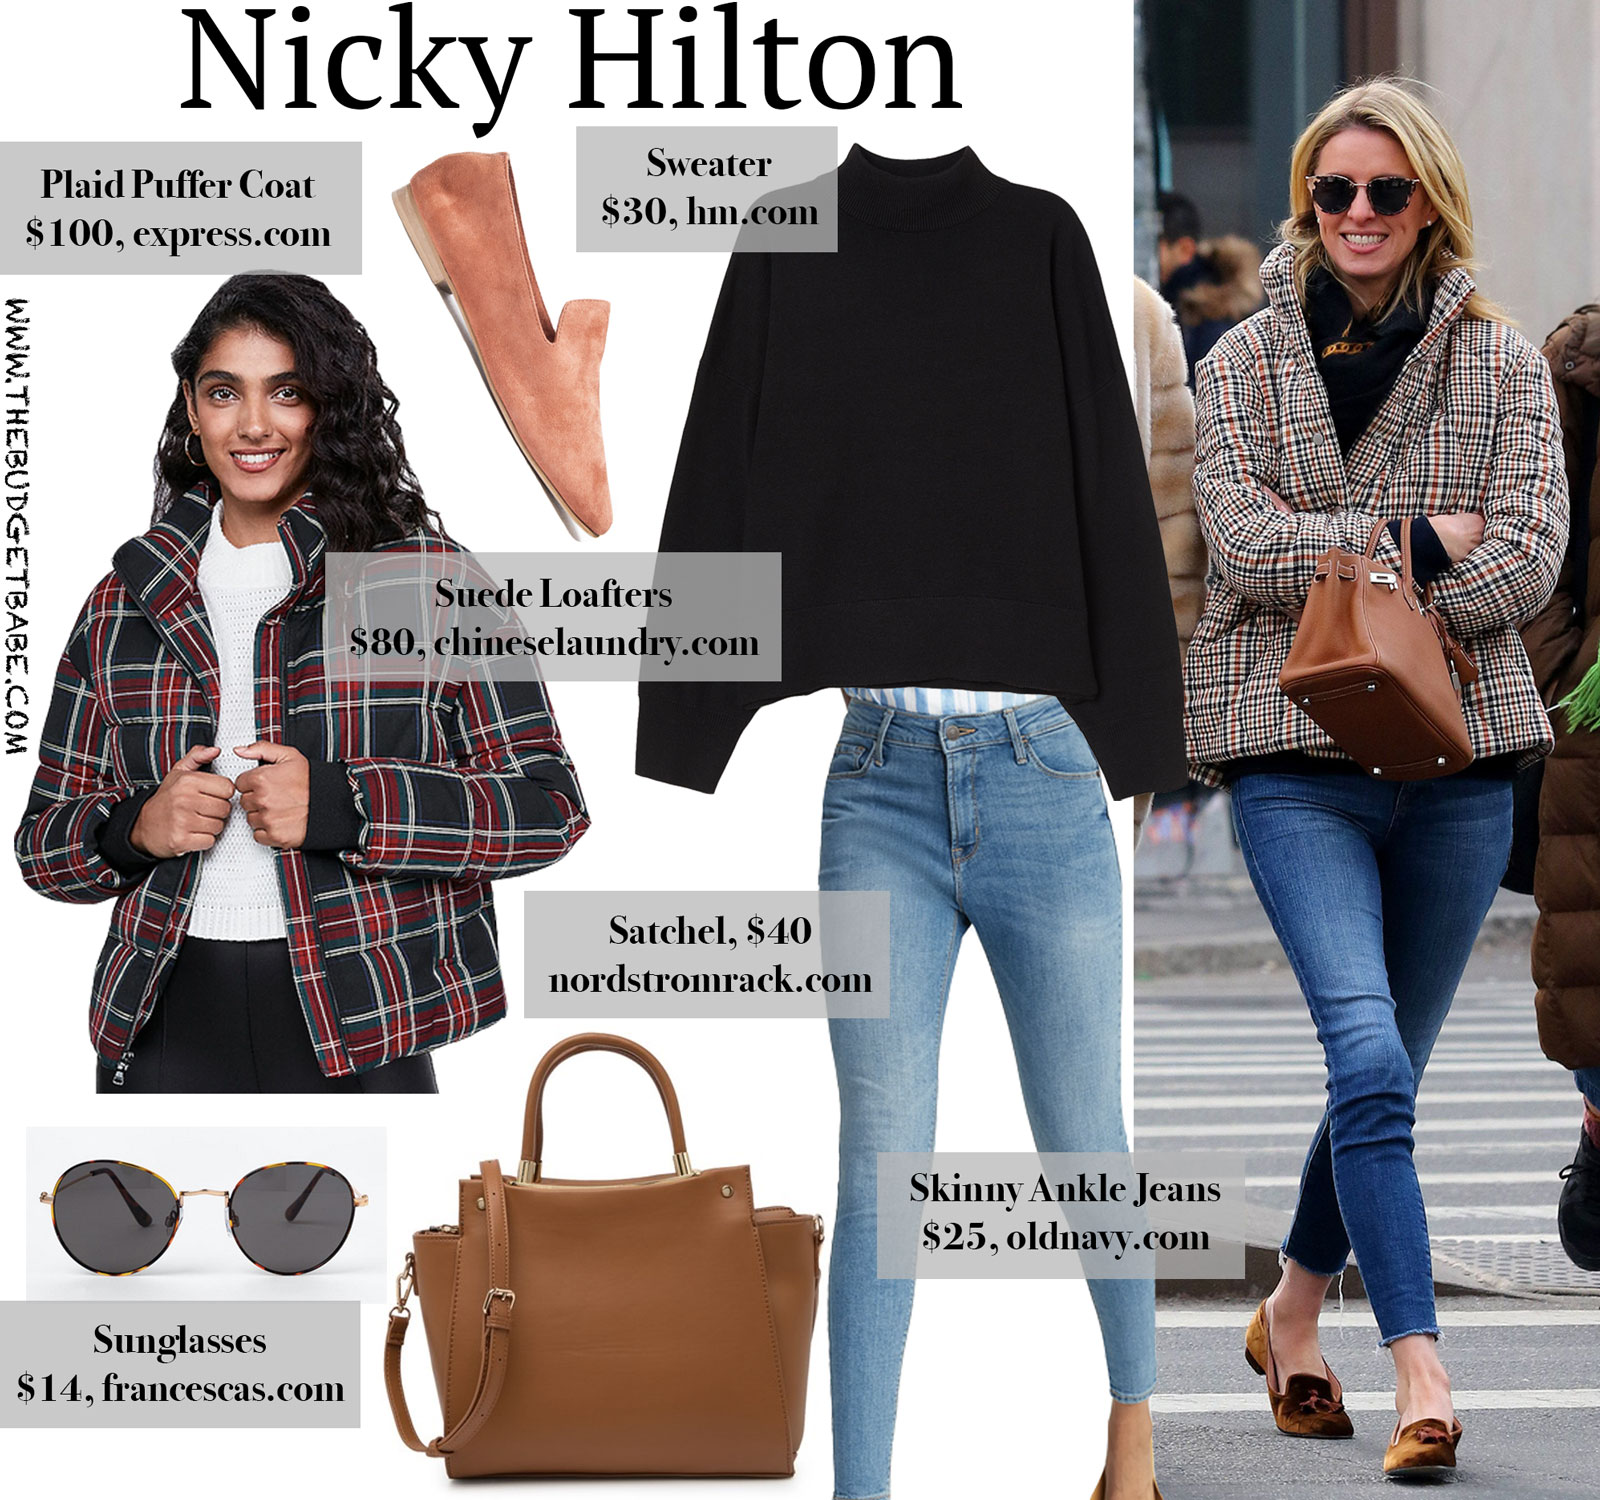 Nicky Hilton Plaid Puffer Coat Look for Less